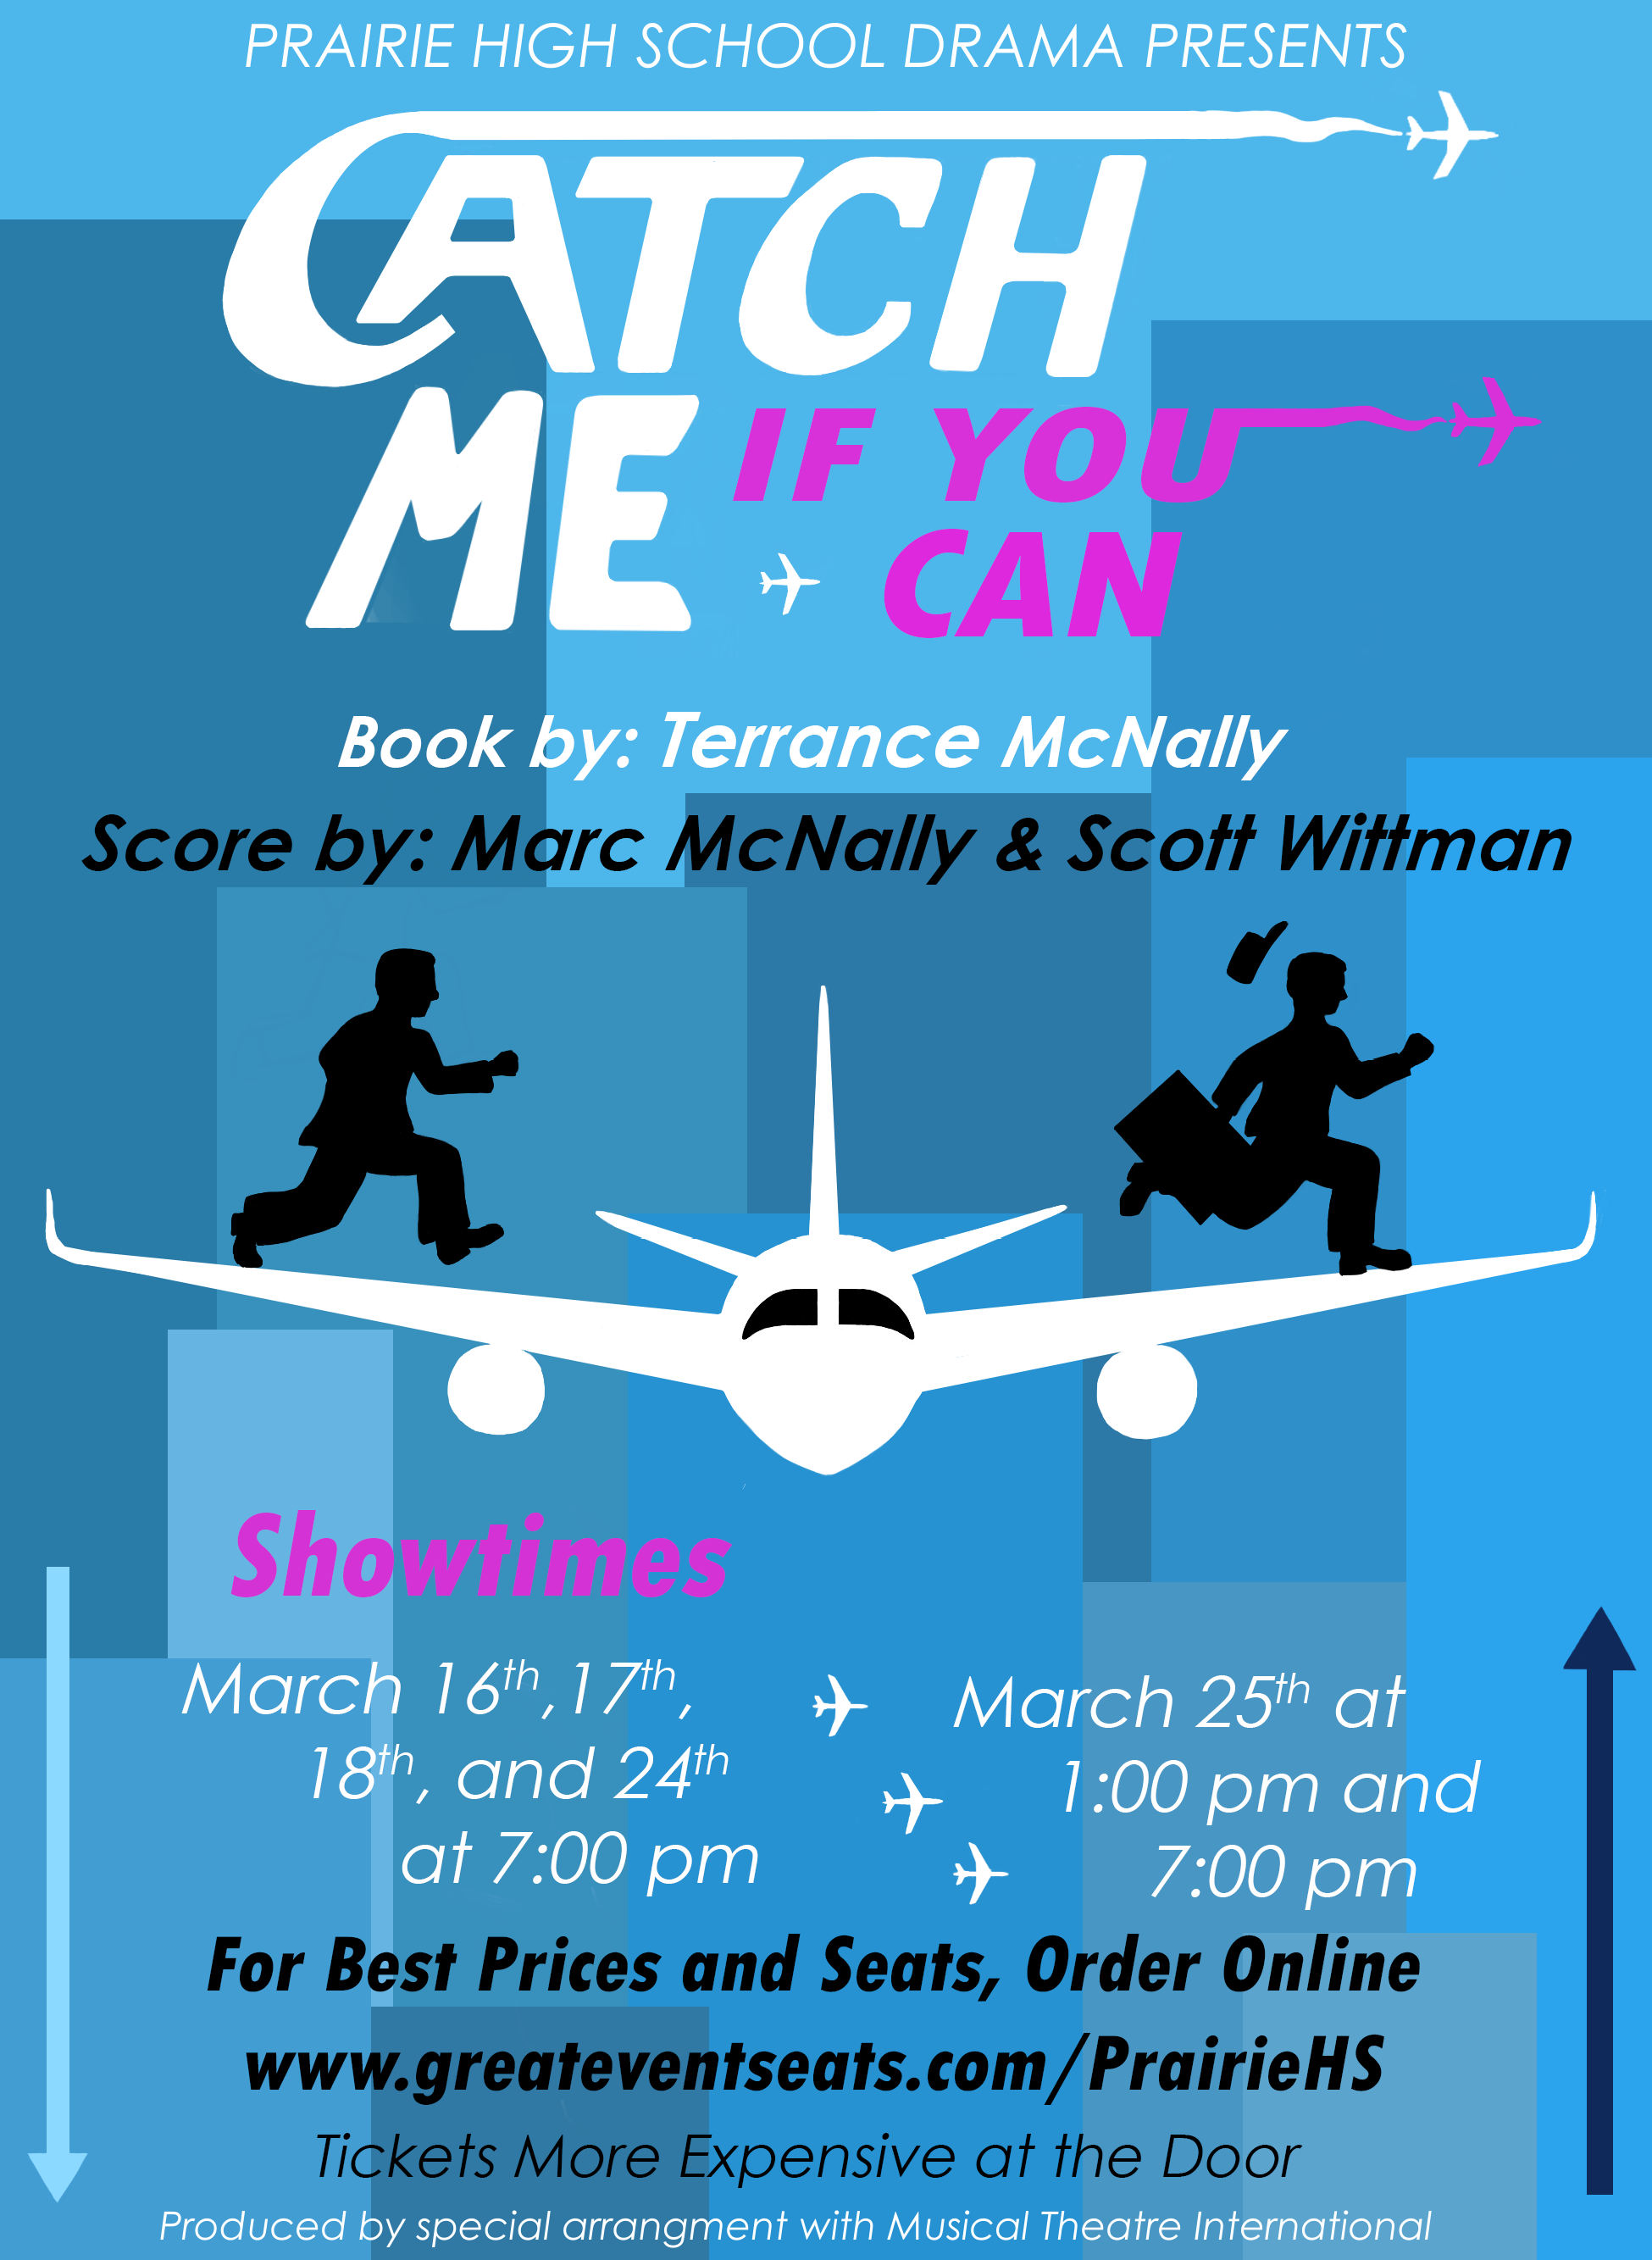 Prairie High School Drama Set To Perform Catch Me If You Can